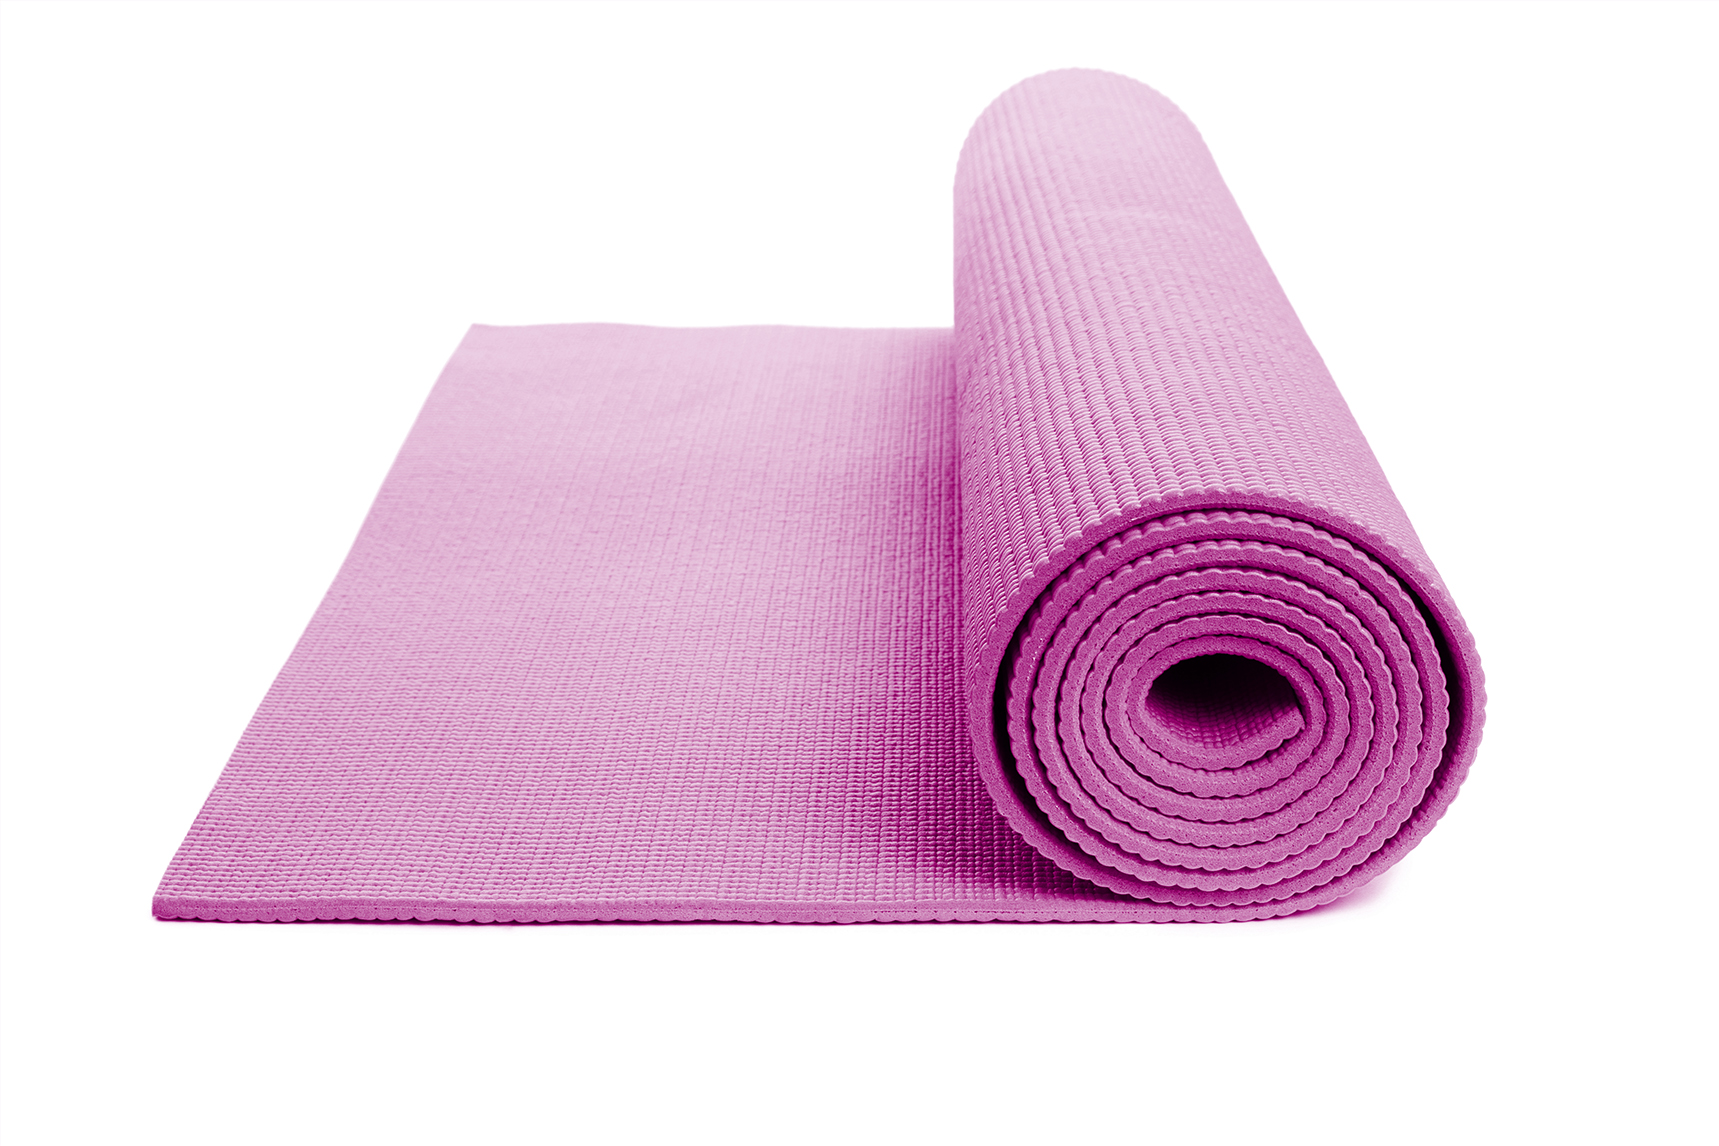 A yoga mat representing the play The Therapist